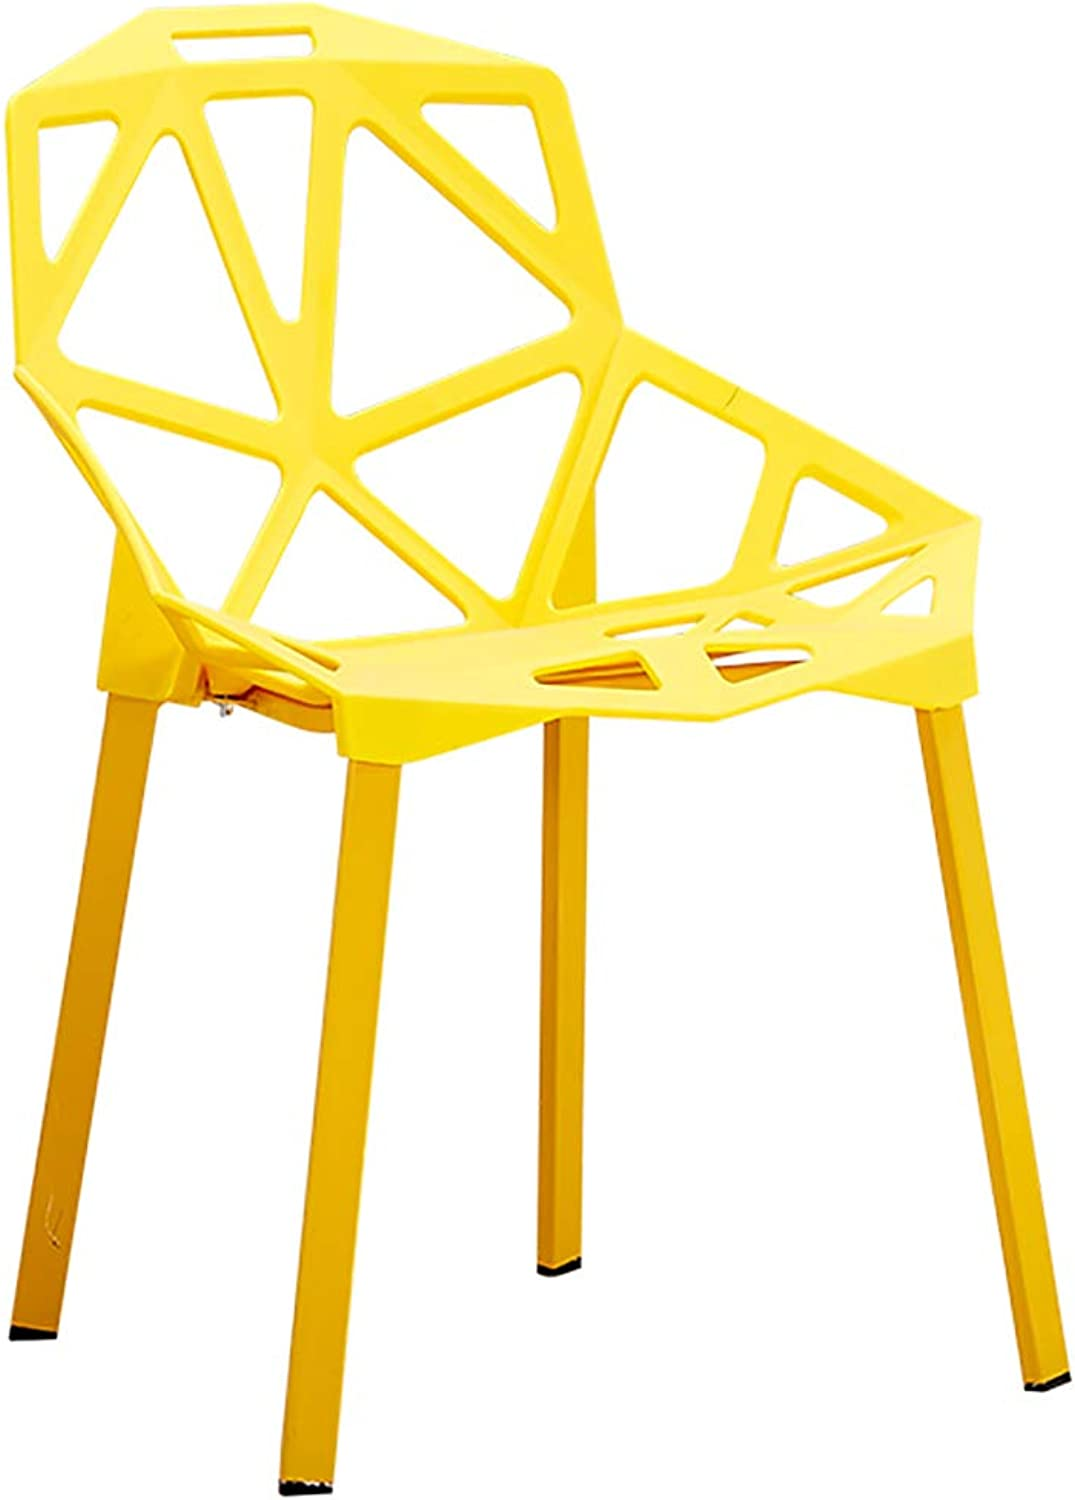 Geometric Hollow Chair Home Modern Minimalist Plastic Stool Chair Wind Adult Dining Chair (color   B)